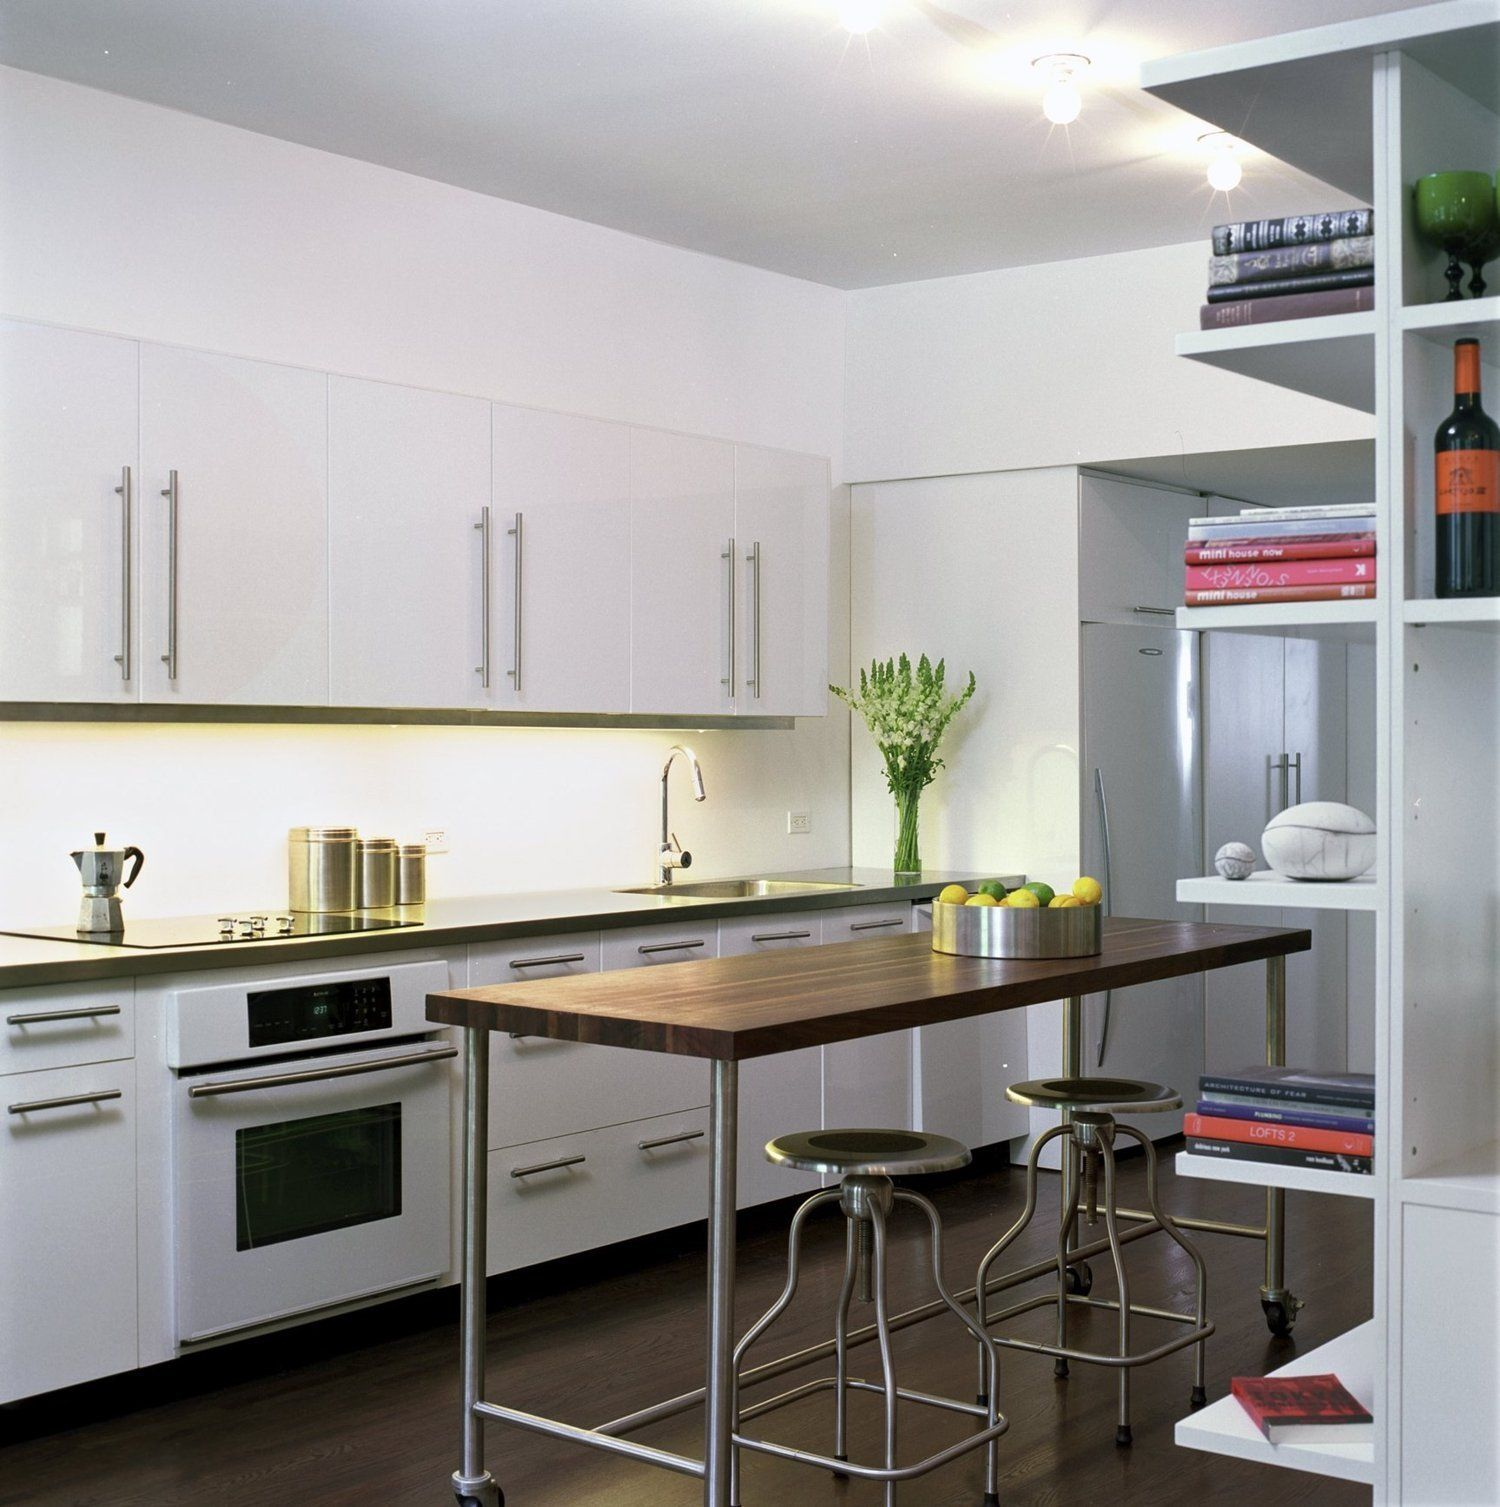 Insider Info: IKEA Employee Shares Tips for Buying IKEA Kitchen ...